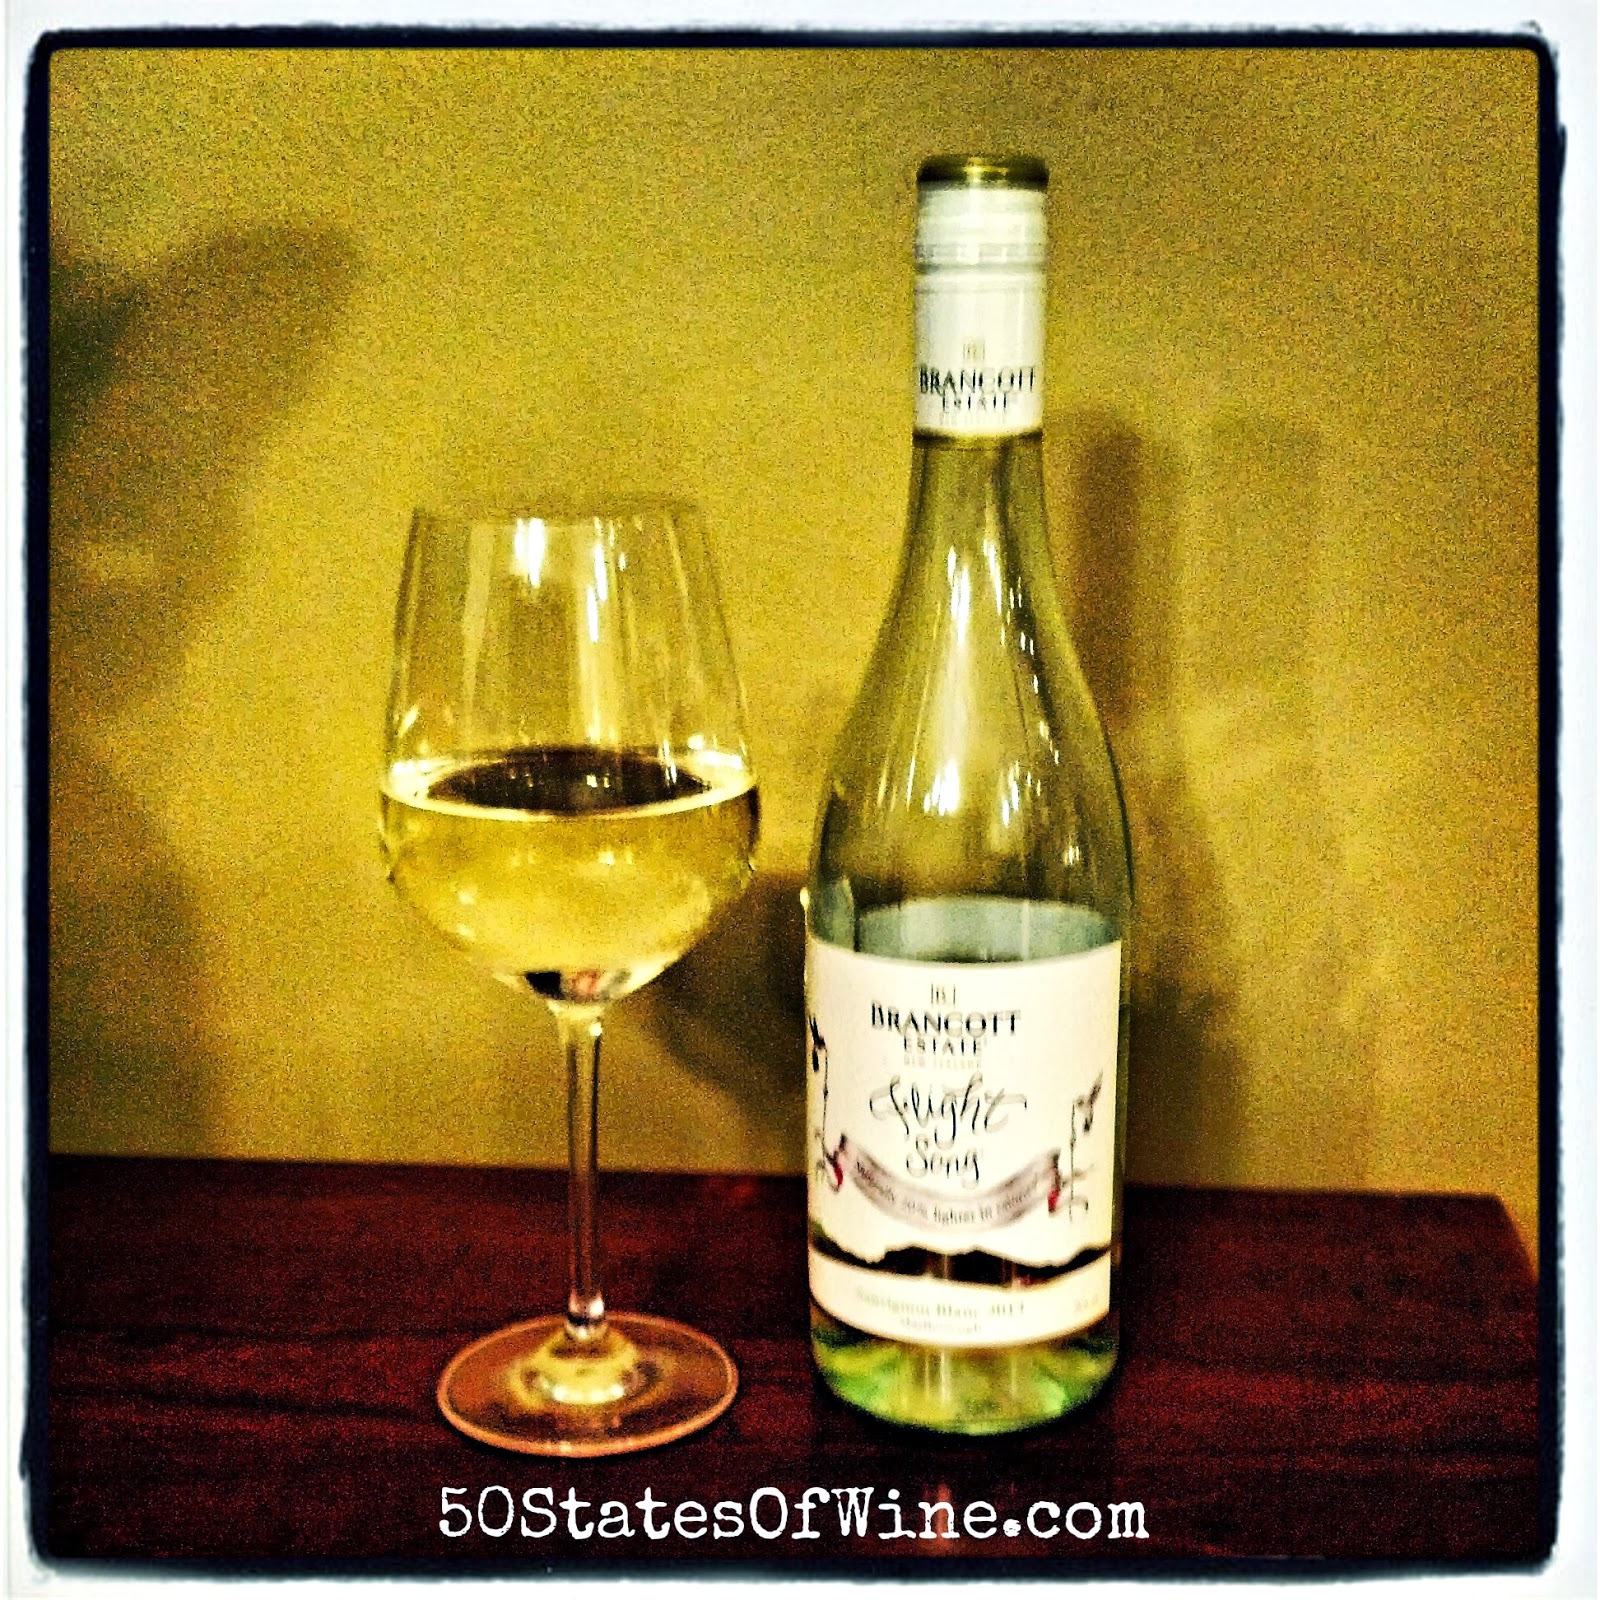 Brancott Estate Flight Song Sauvignon Blanc 2013